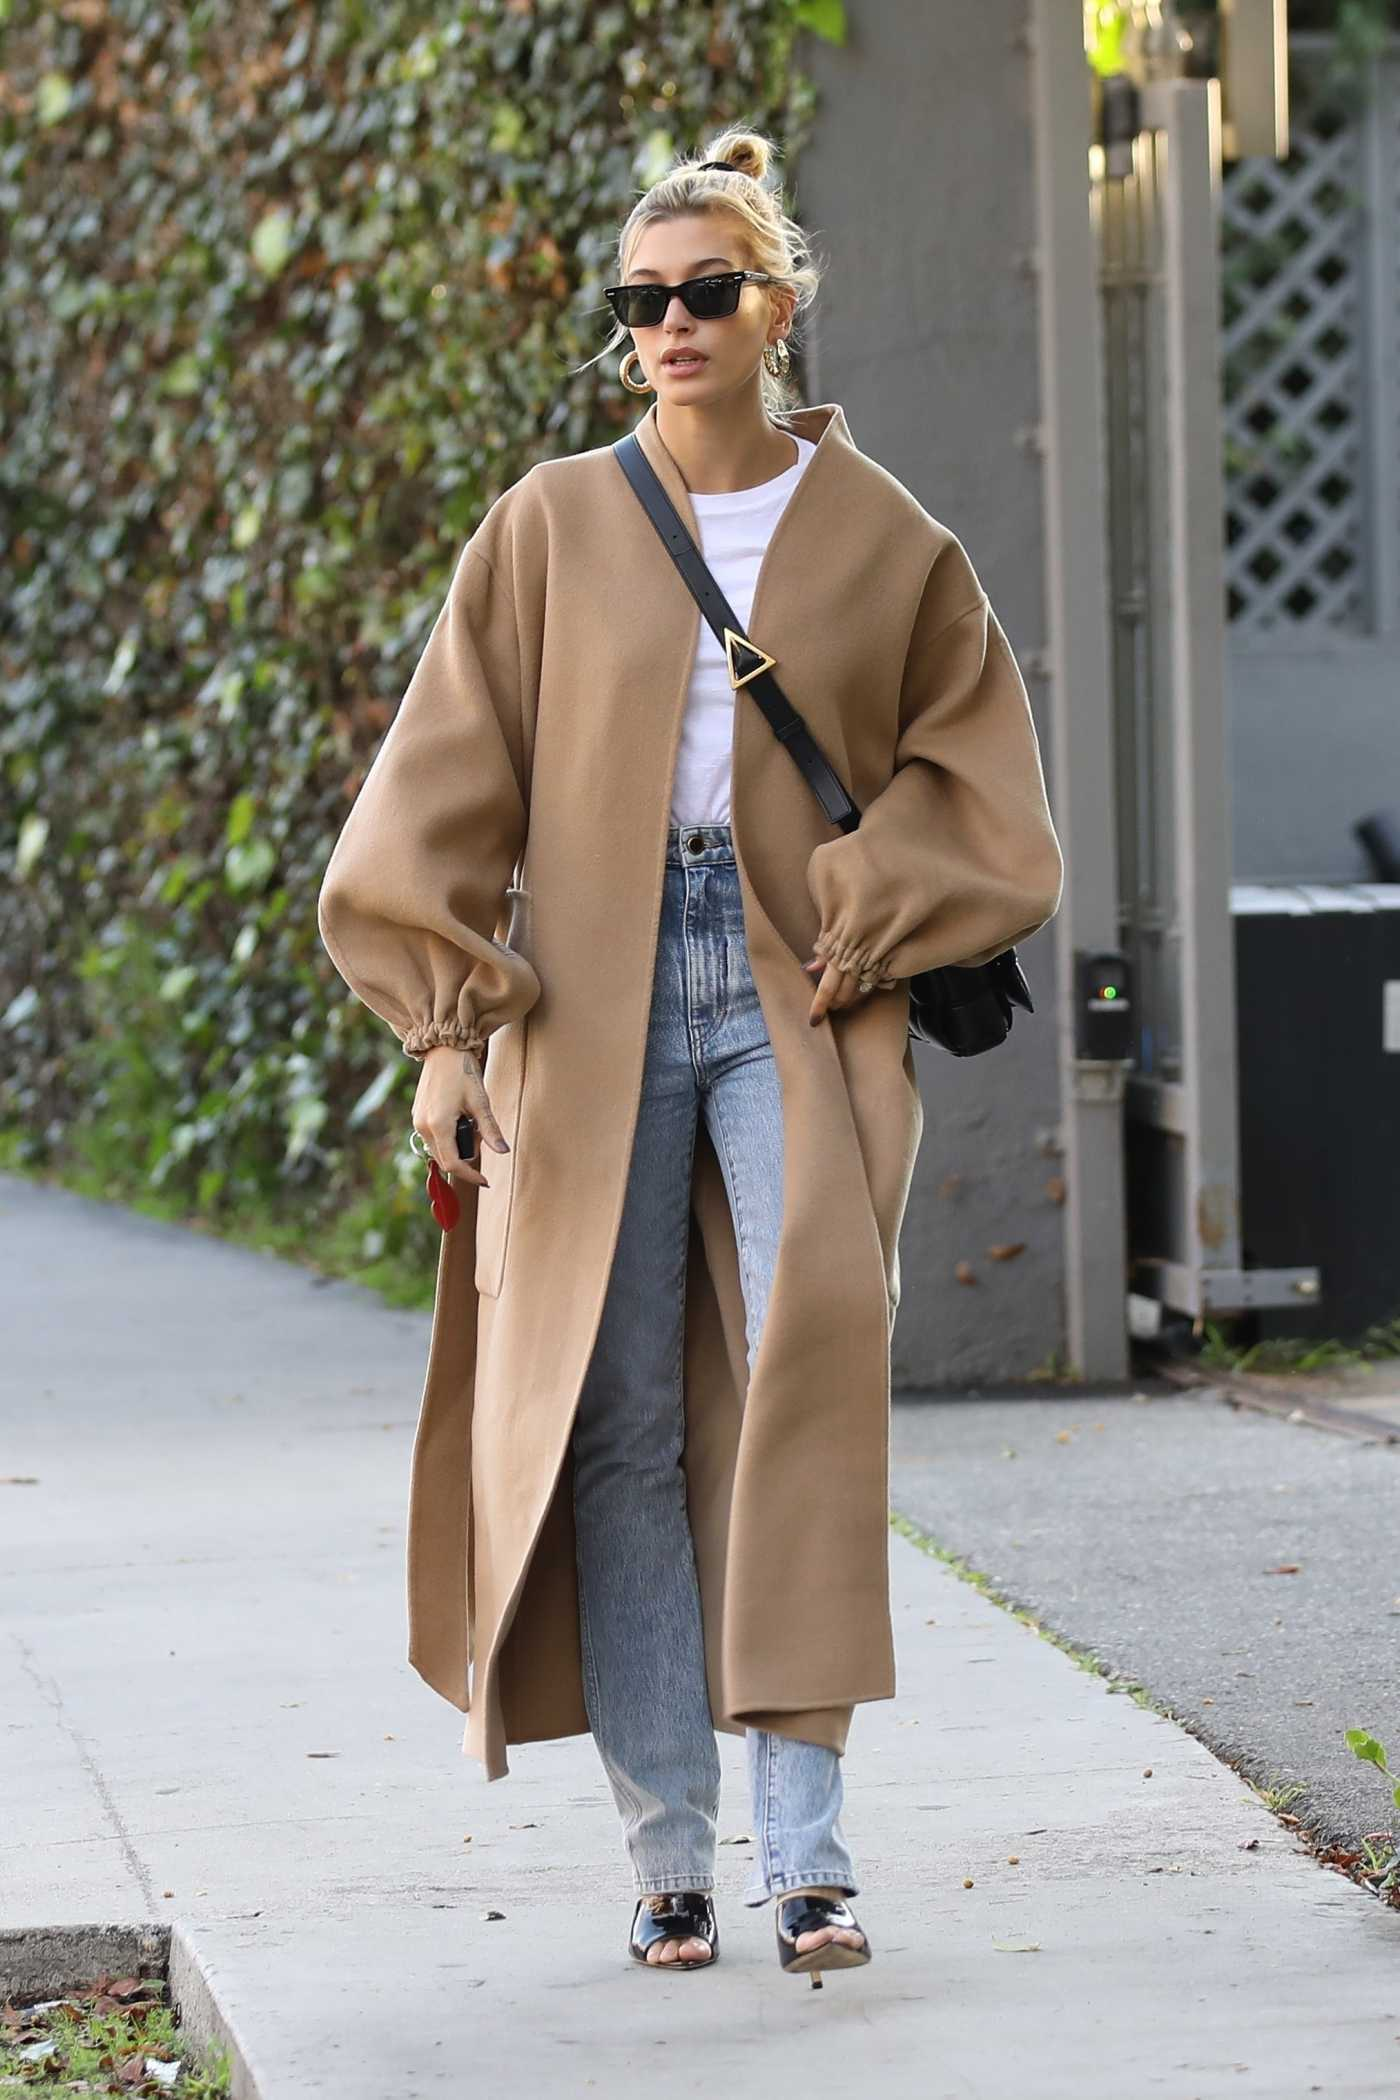 Hailey Baldwin in a Beige Coat Was Seen Out in West Hollywood 01/17/2020